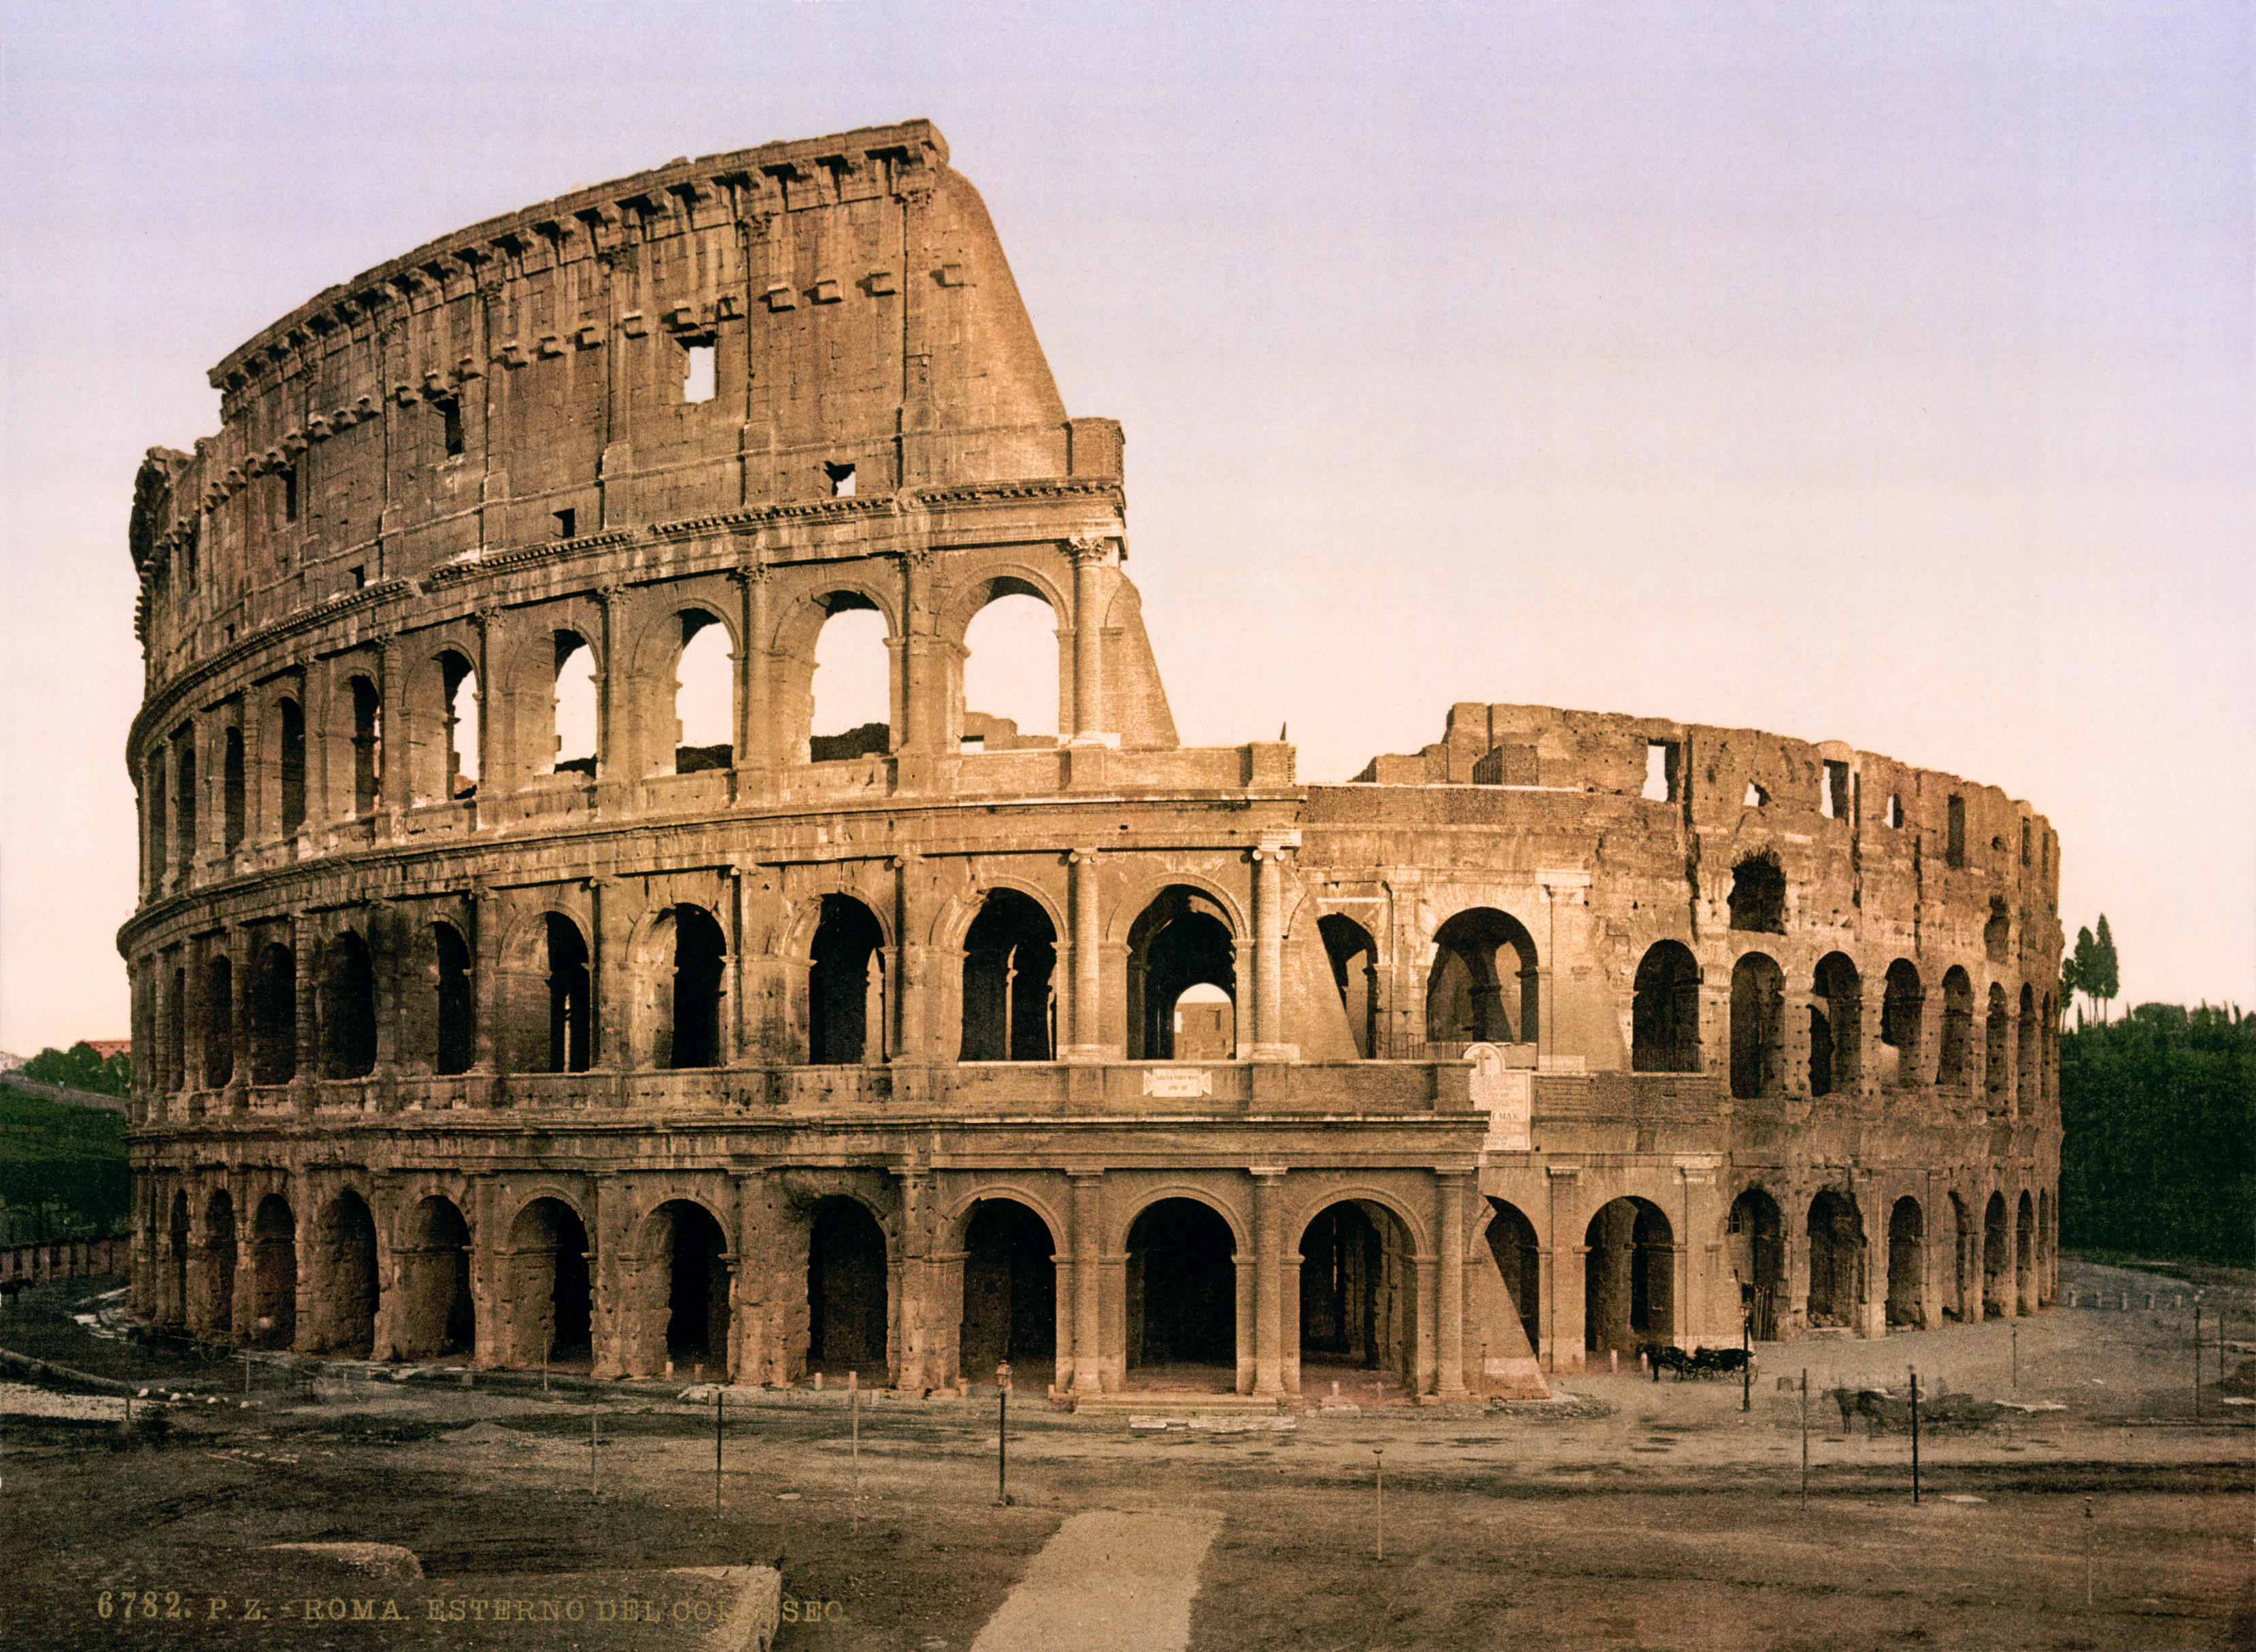 The colosseum, italy photo